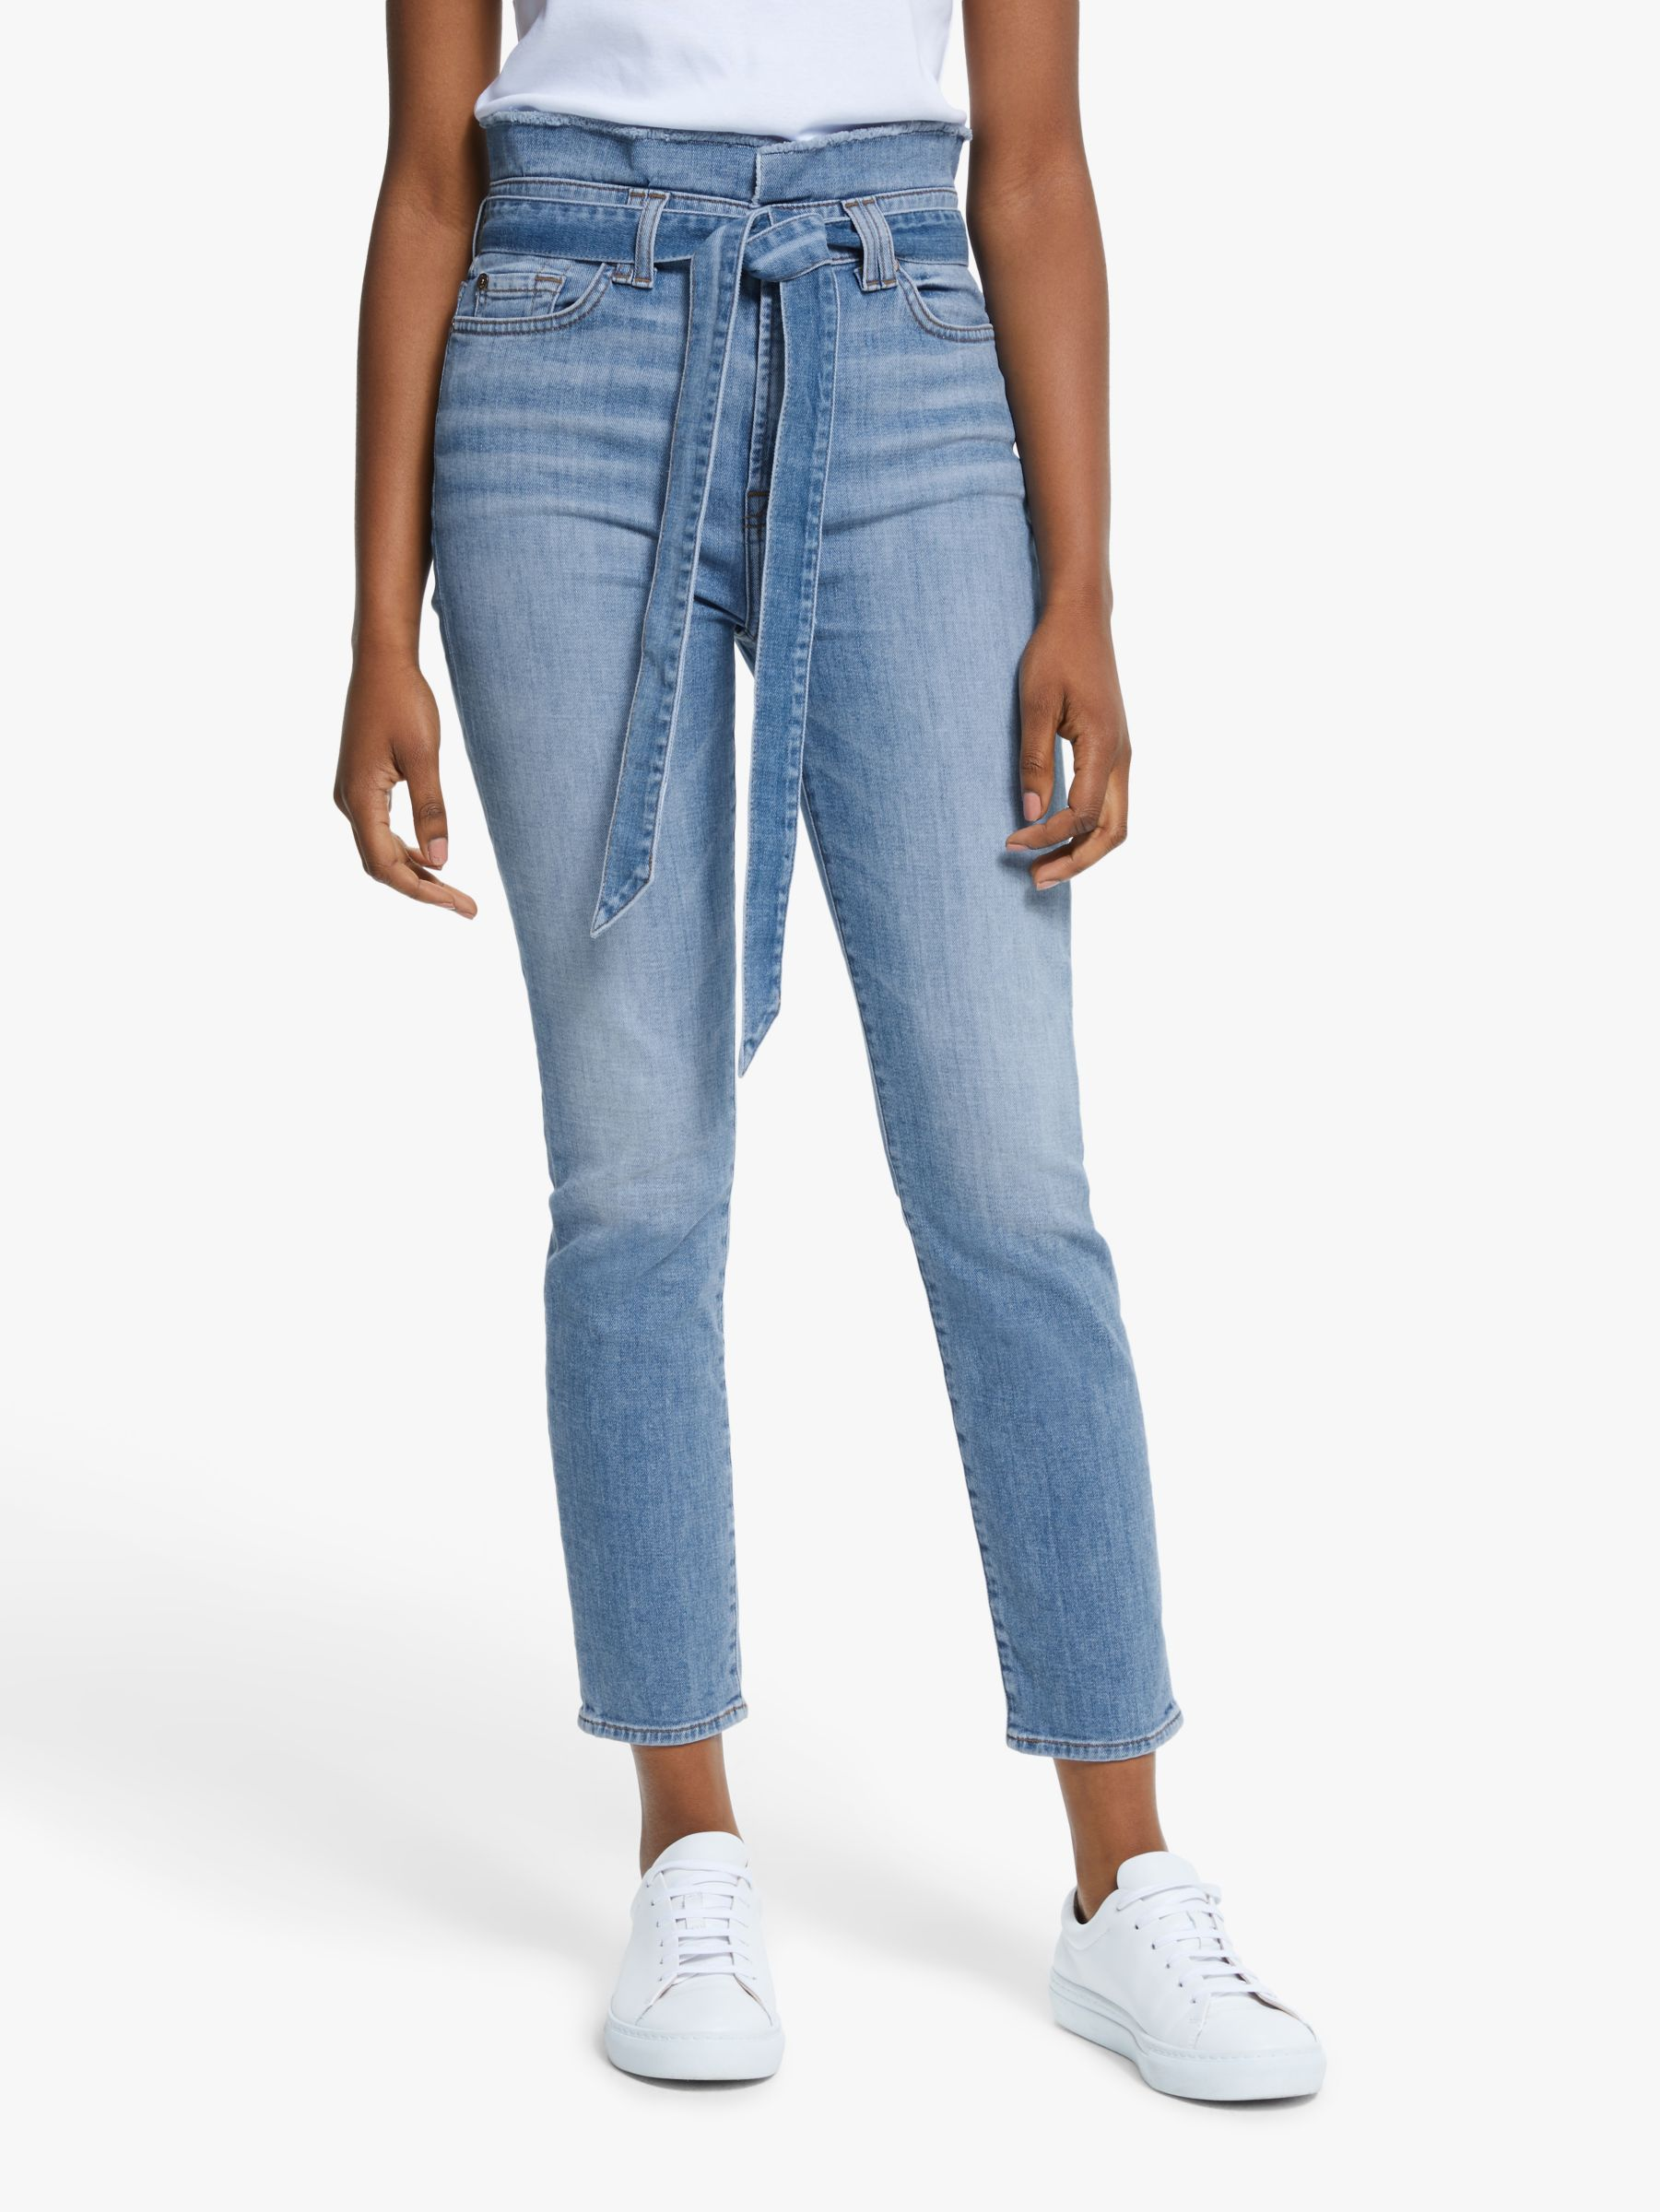 7 For All Mankind 7 For All Mankind Roxanne Slim Illusion Cropped Paperbag Jeans, Bright Light Blue